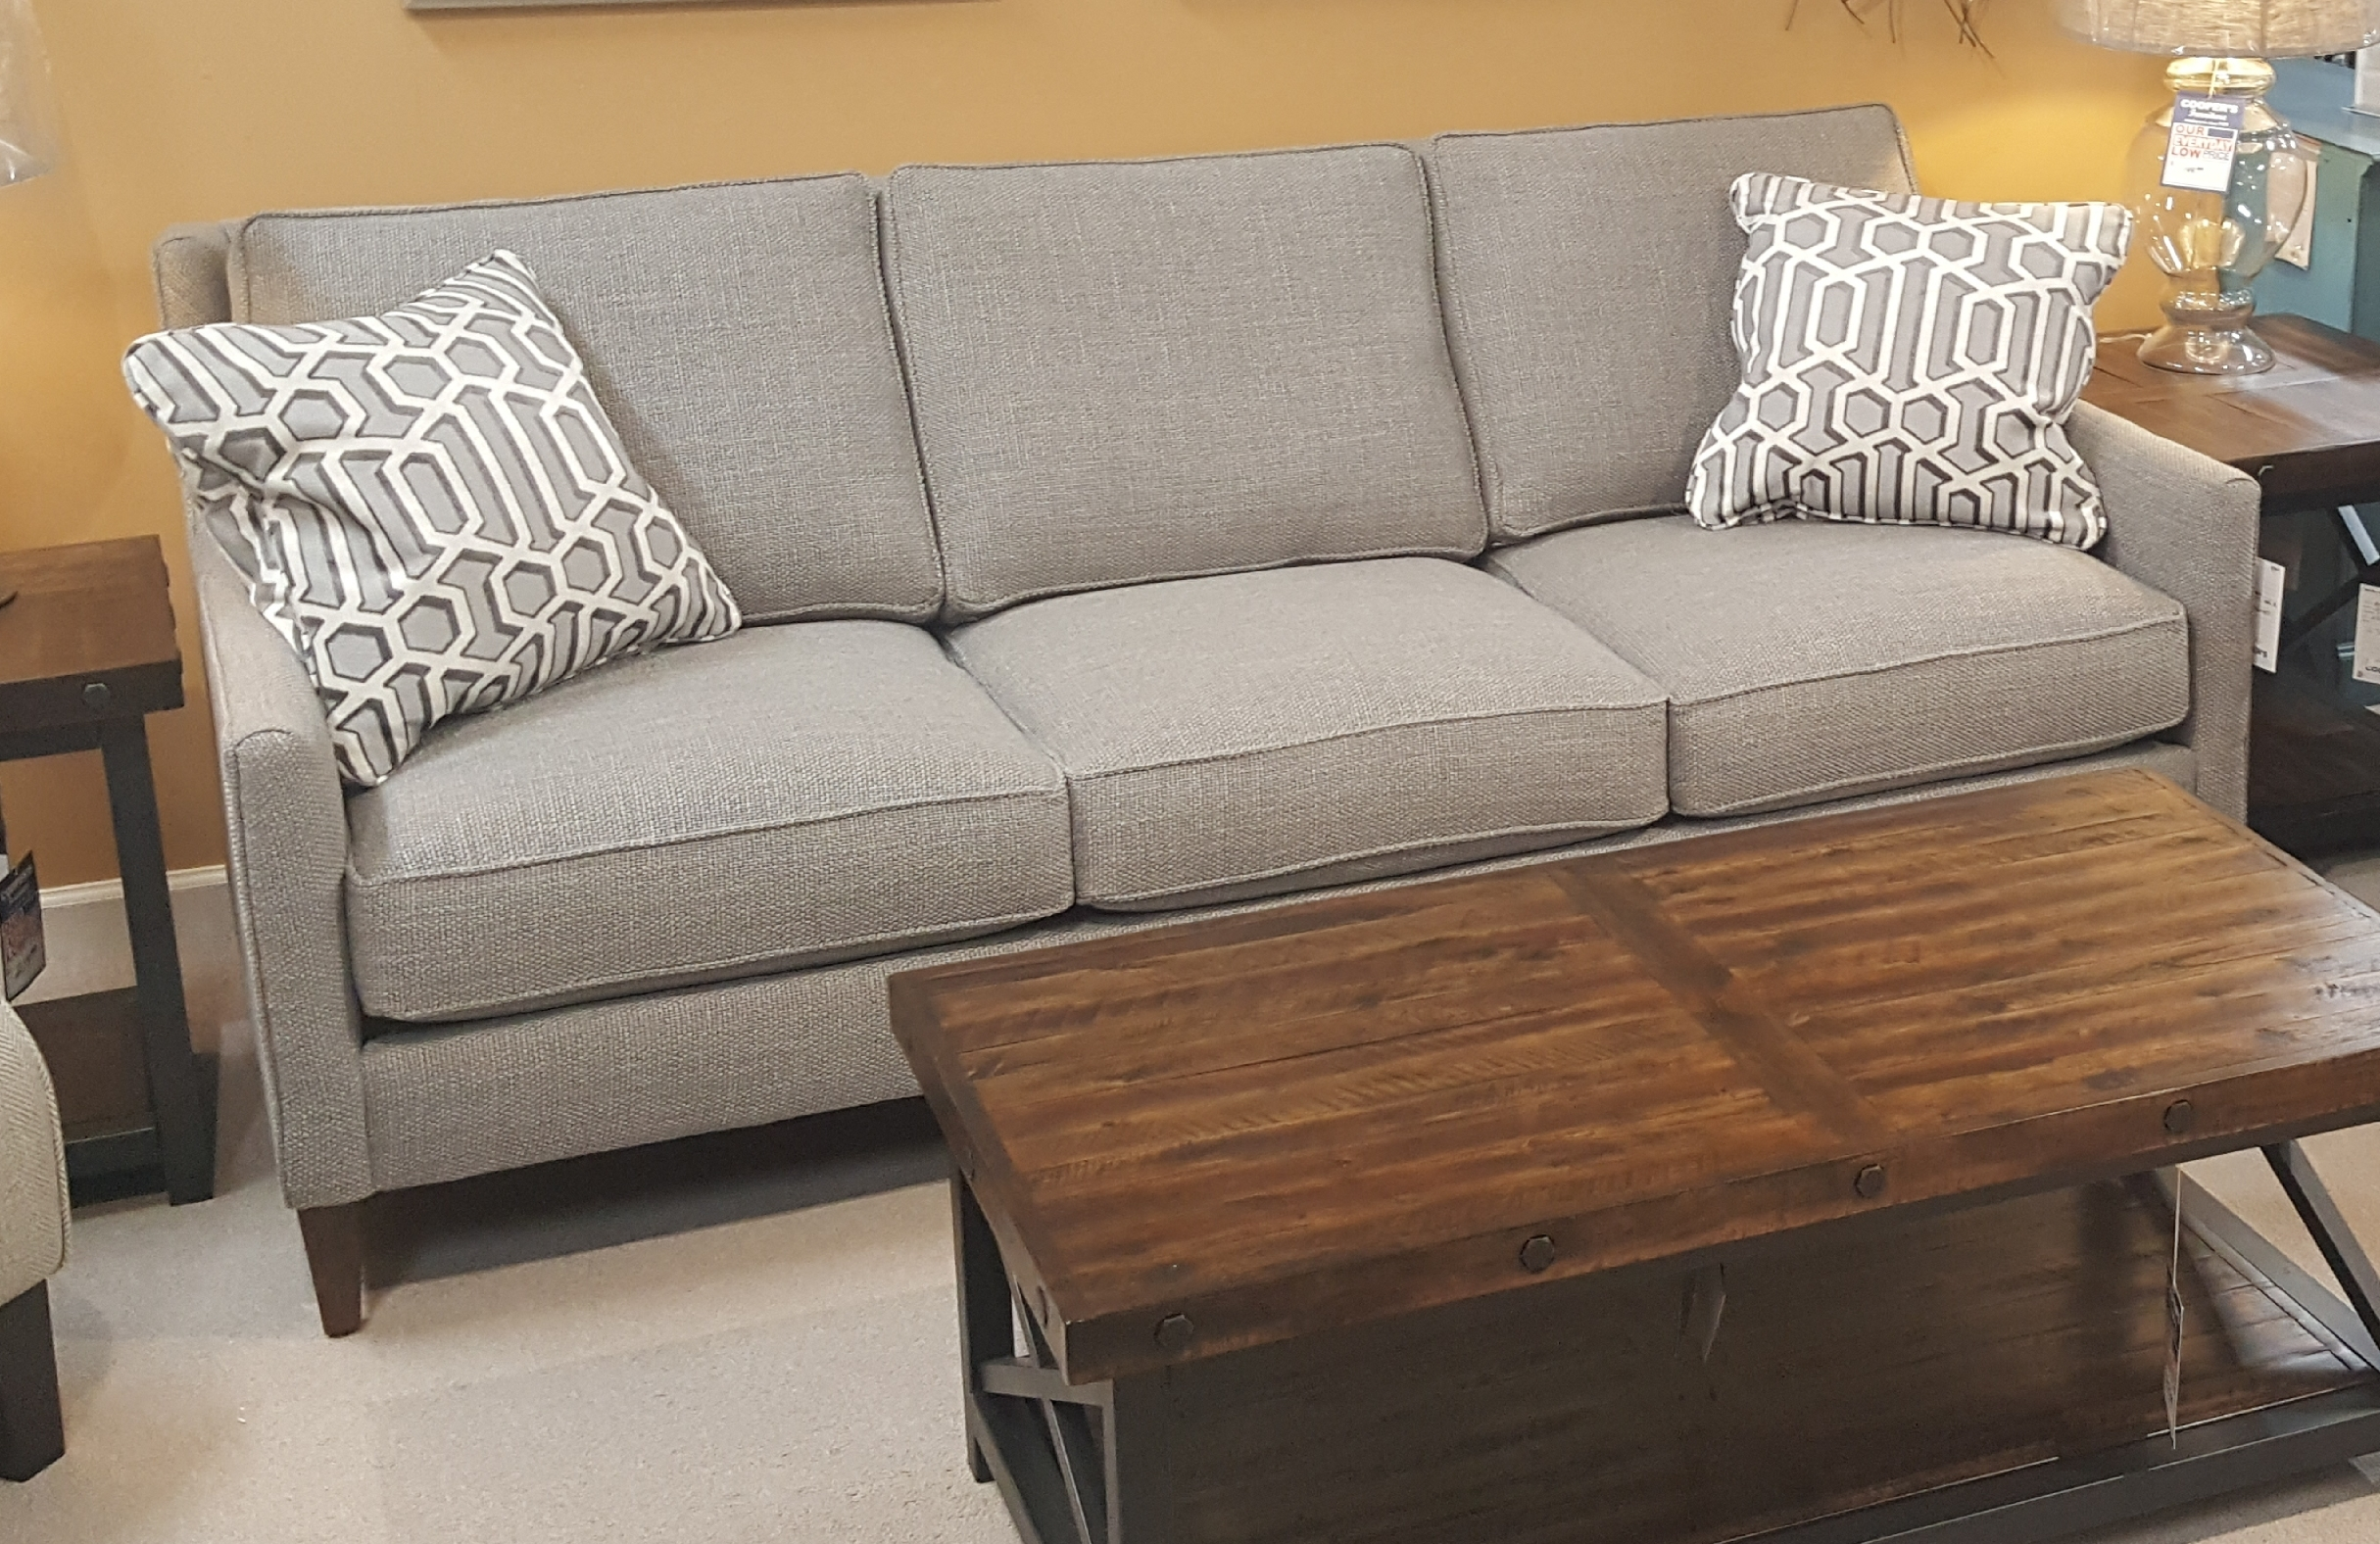 Living Room Furniture Cary Nc | Sofas, Recliners, Sectionals Regarding Durham Region Sectional Sofas (Image 4 of 10)